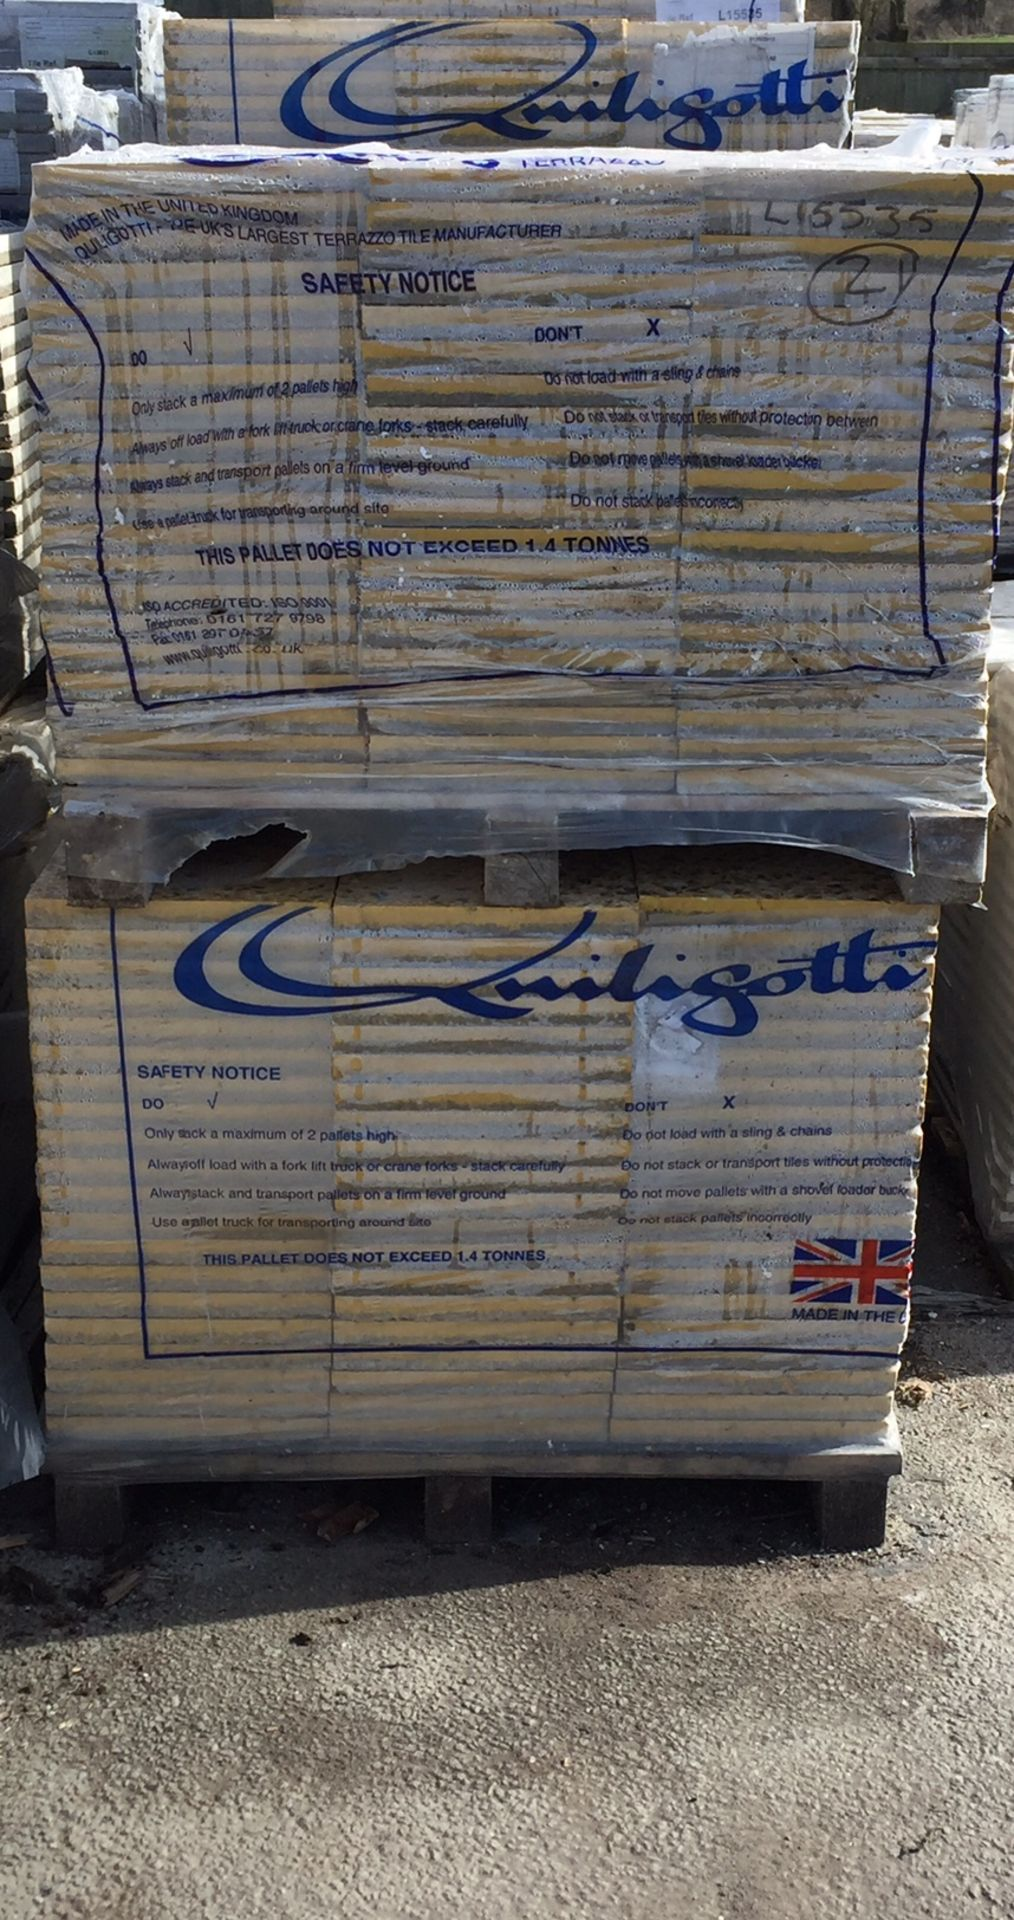 Lot 52 - 1 x Pallet Quiligotti Terrazzo Commercial Floor Tiles (L15535) 20 square yards per pallet